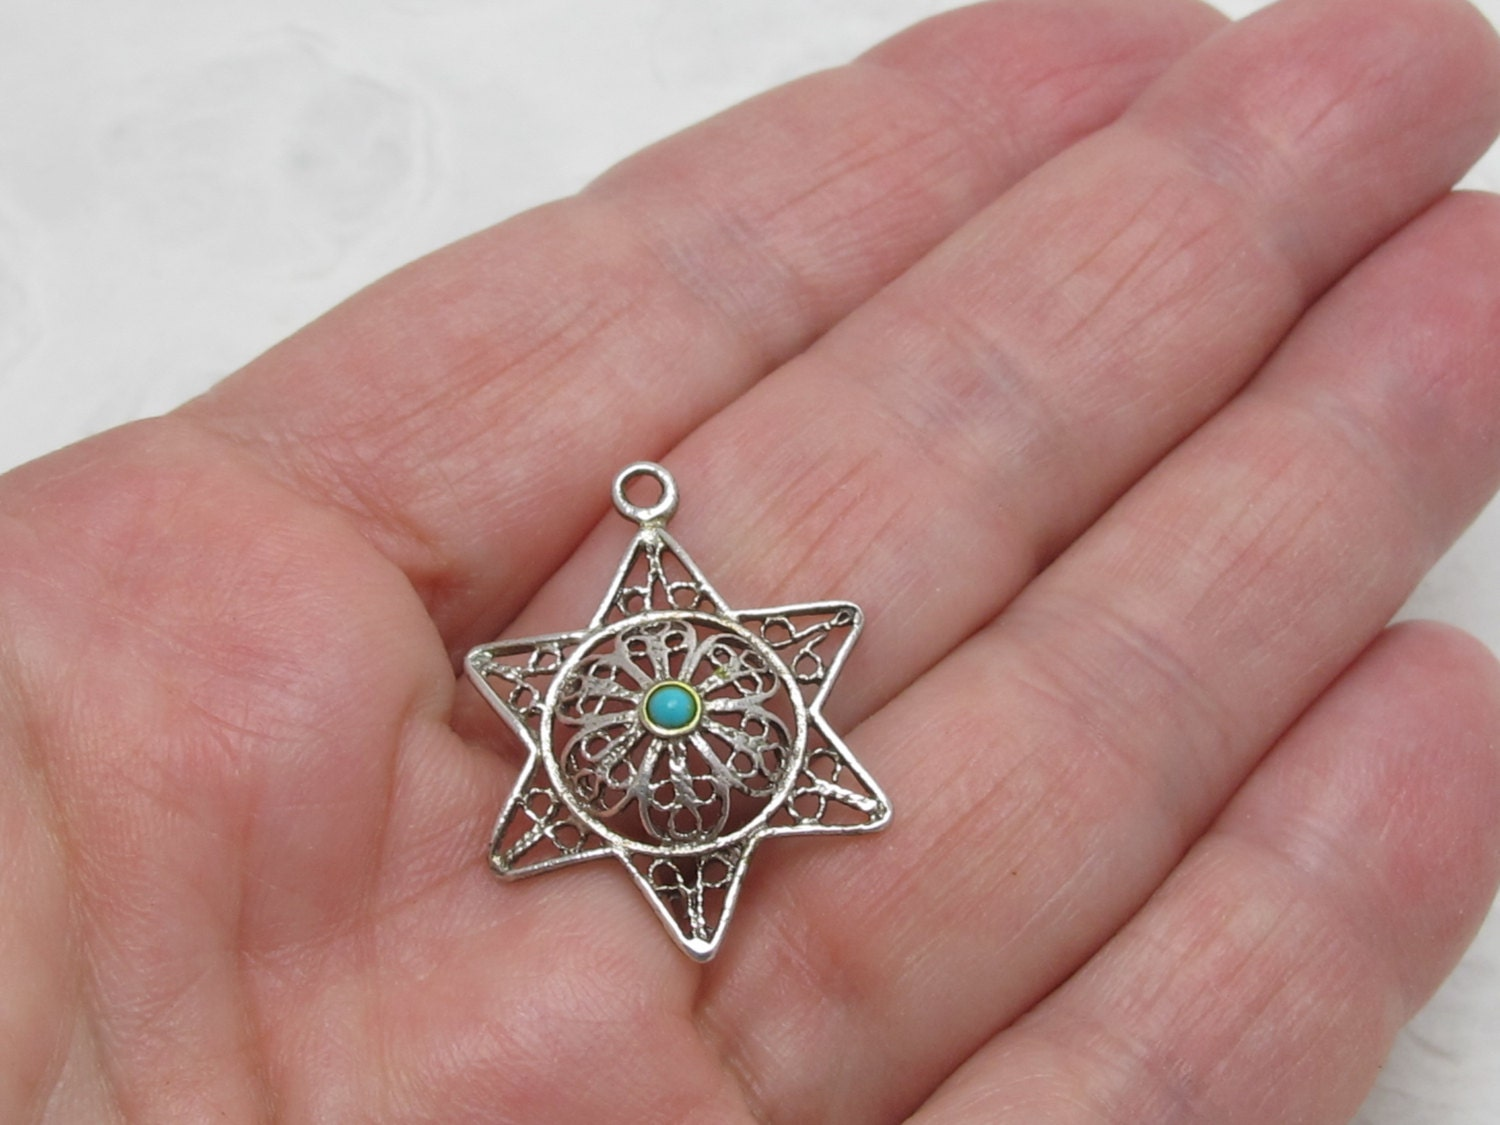 Vintage Filigree Silver Star Of David Pendant/Charm With Turquoise